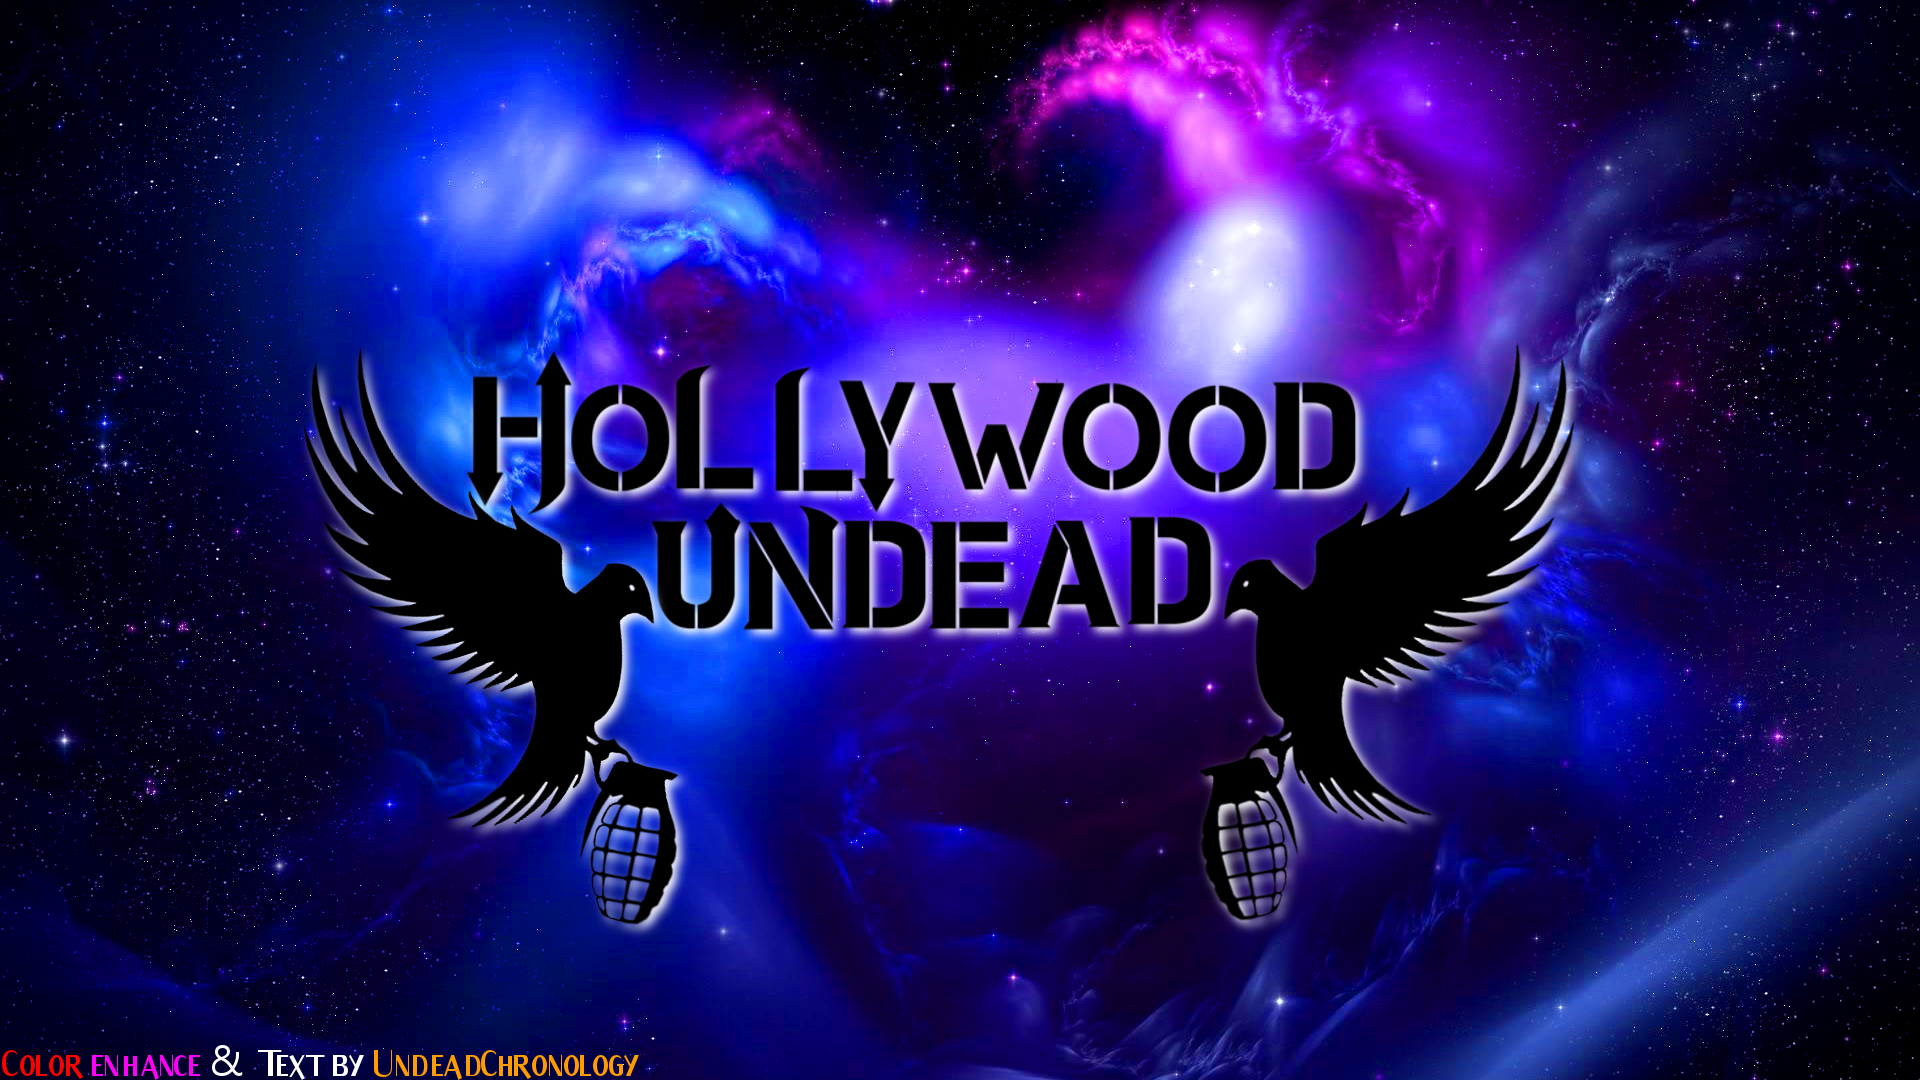 Hollywood Undead Wallpaper Zin 1920x1080